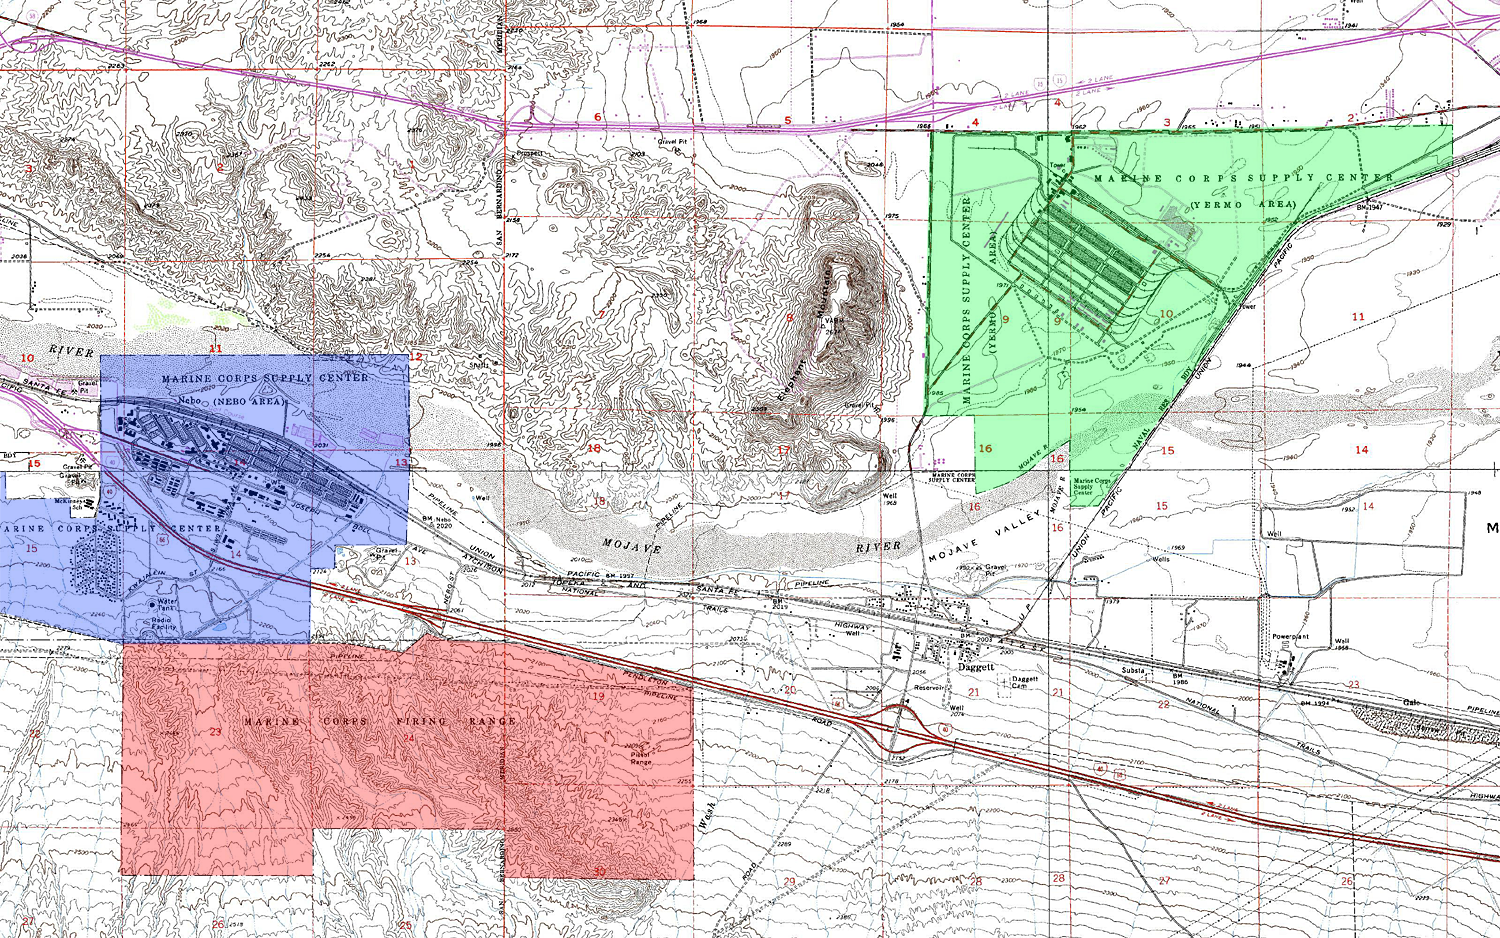 FileMarine Corps Logistics Base Barstow annexespng Wikimedia Commons